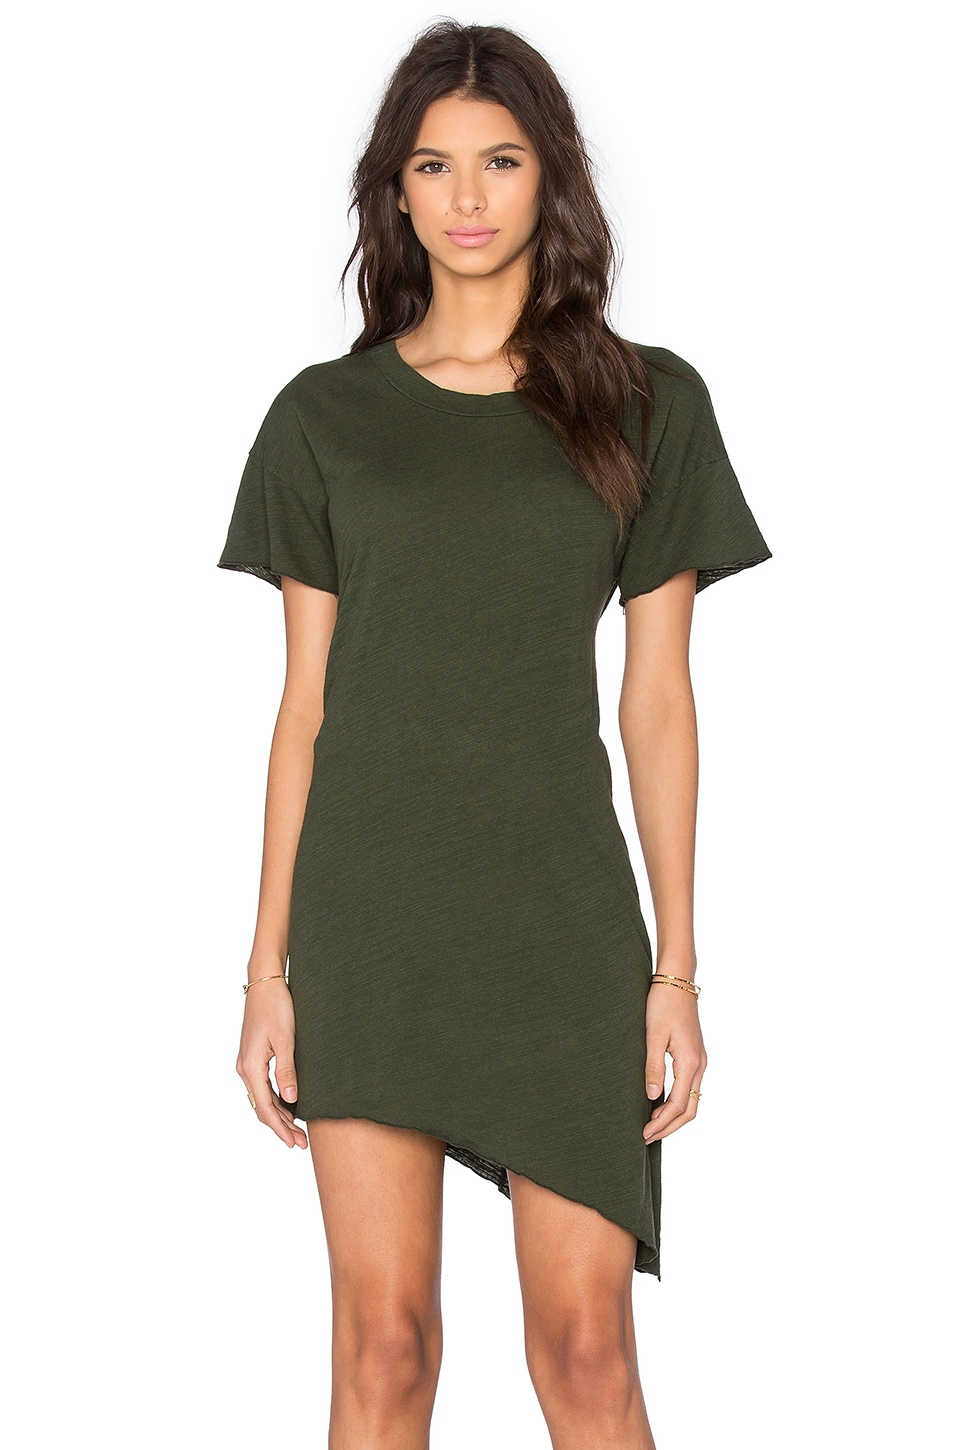 LNA Slant Tee Dress in Army